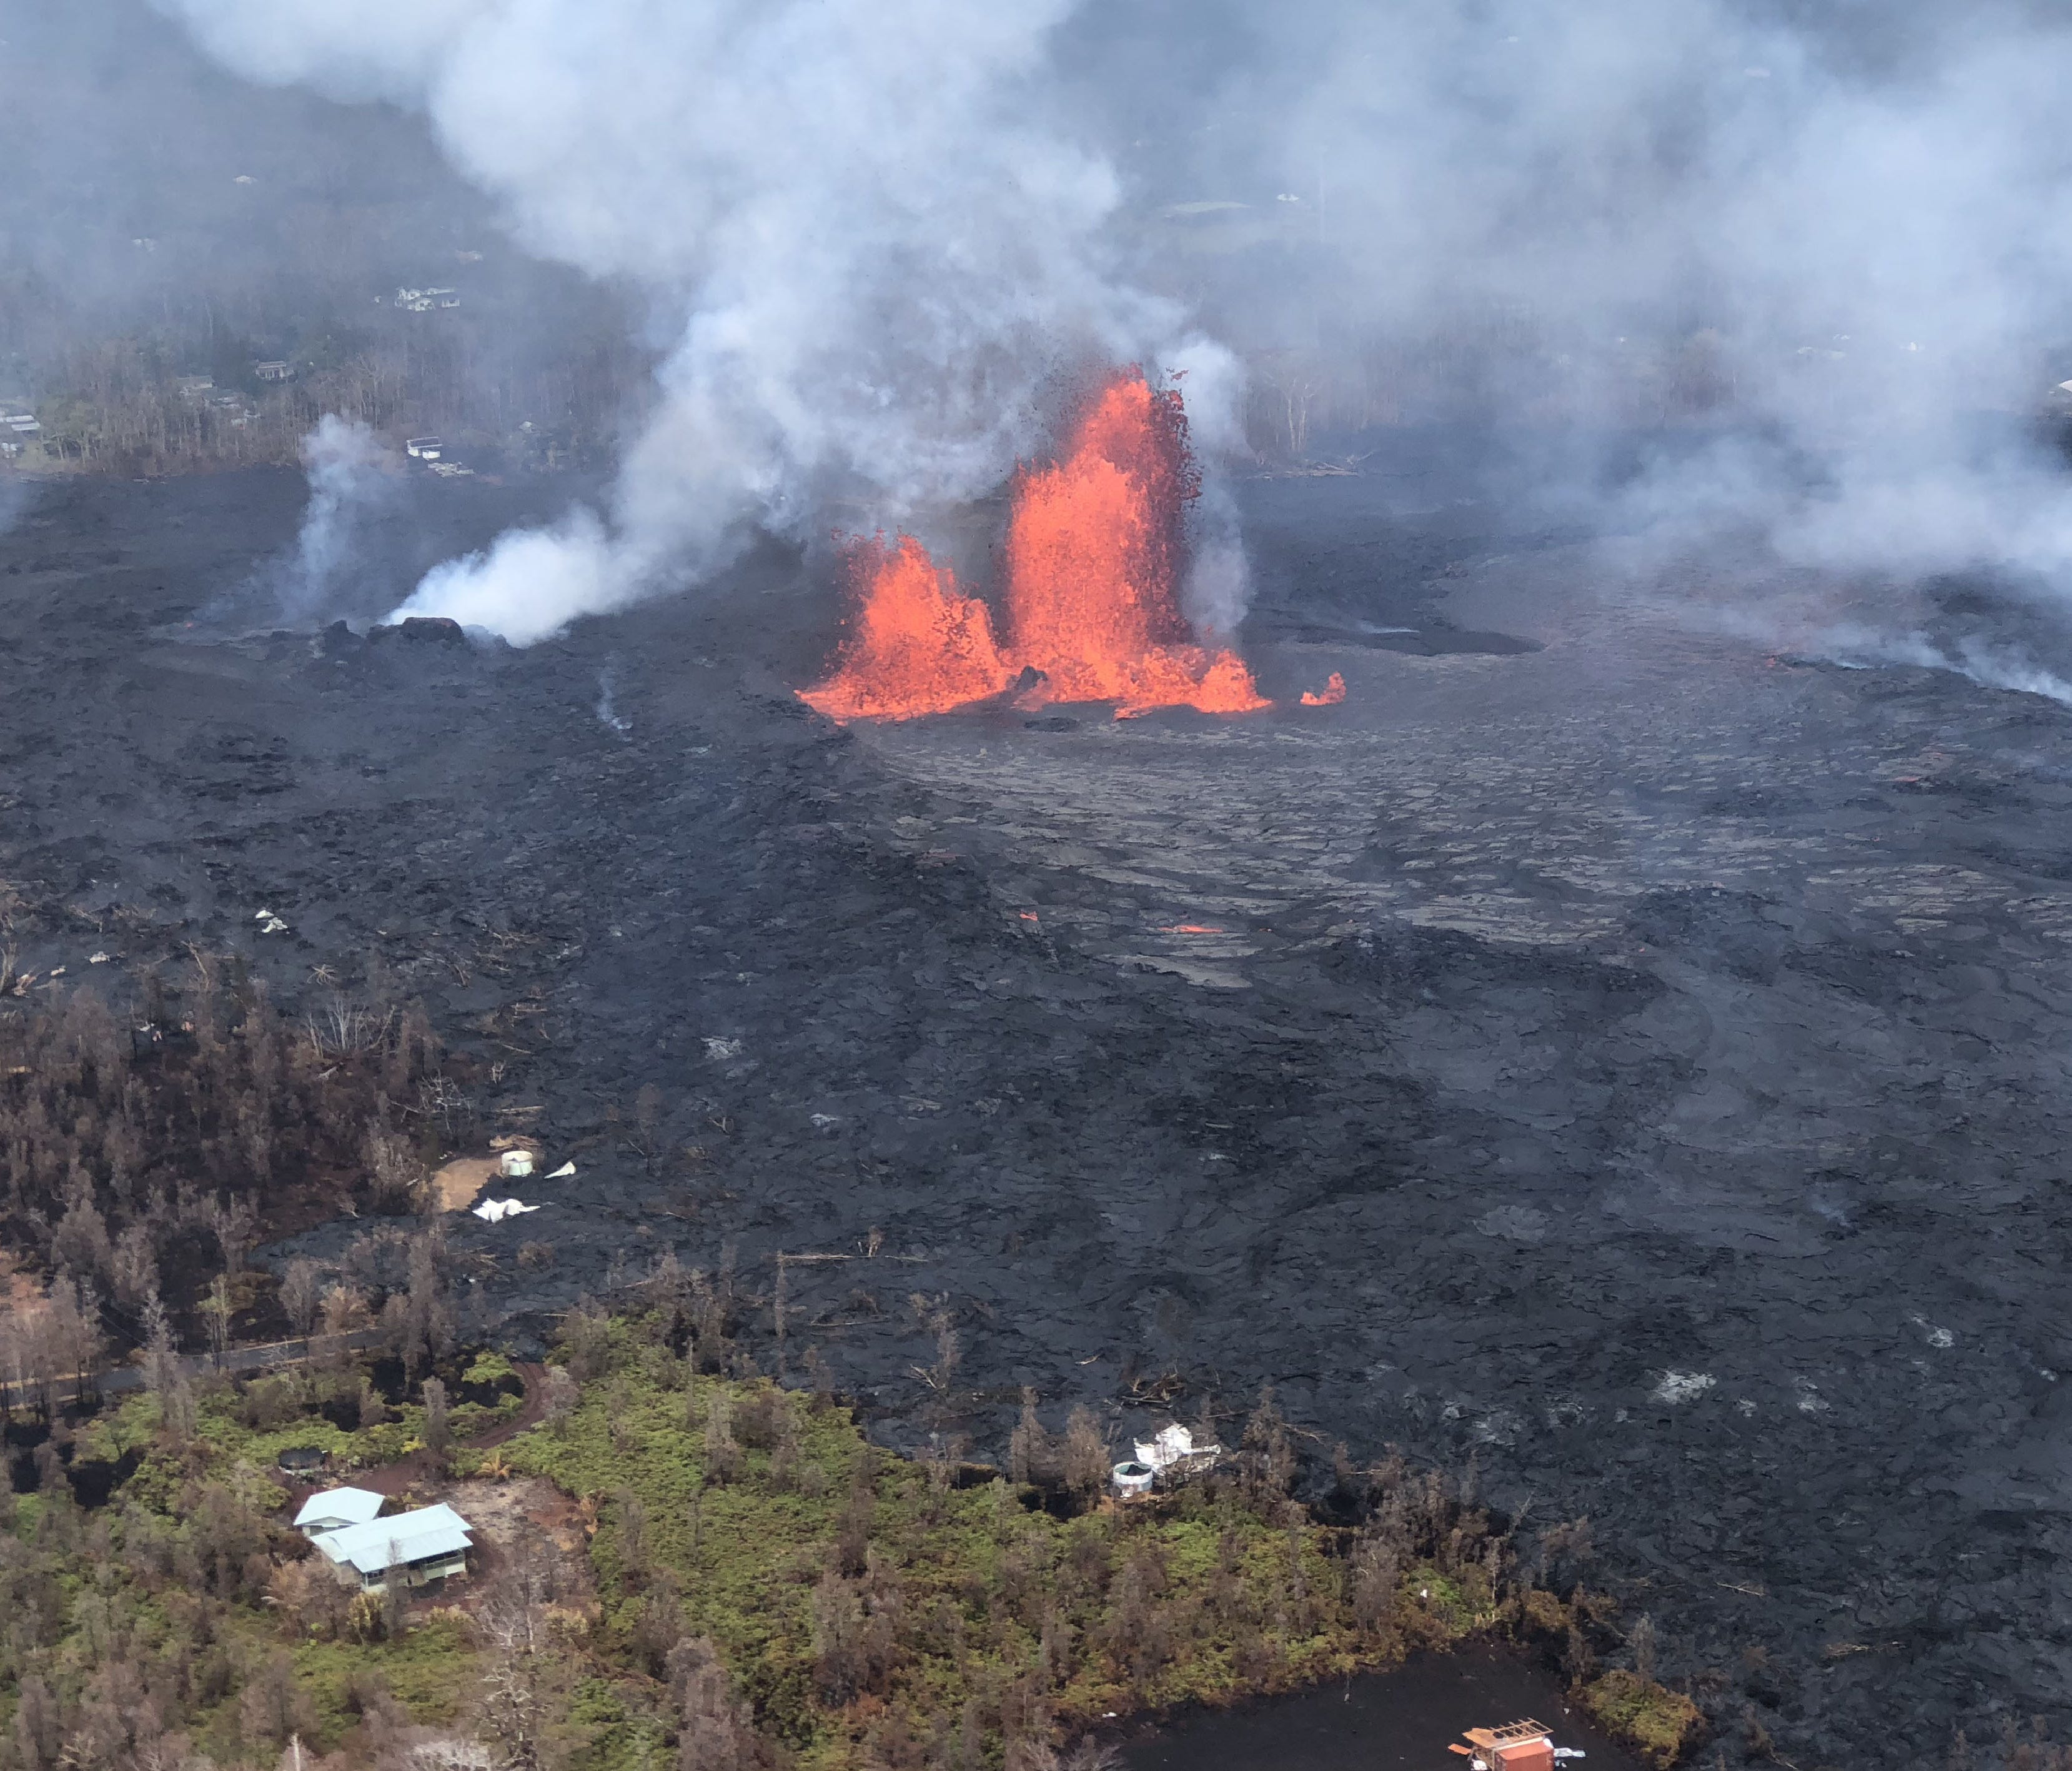 This image obtained May 30, 2018 from the US Geological Survey shows Fissure 8 reactivated on the afternoon of May 29,2018 when, at times, lava fountains were reaching heights of 200 feet and feeding a lava flow that advanced to the northeast at Kila